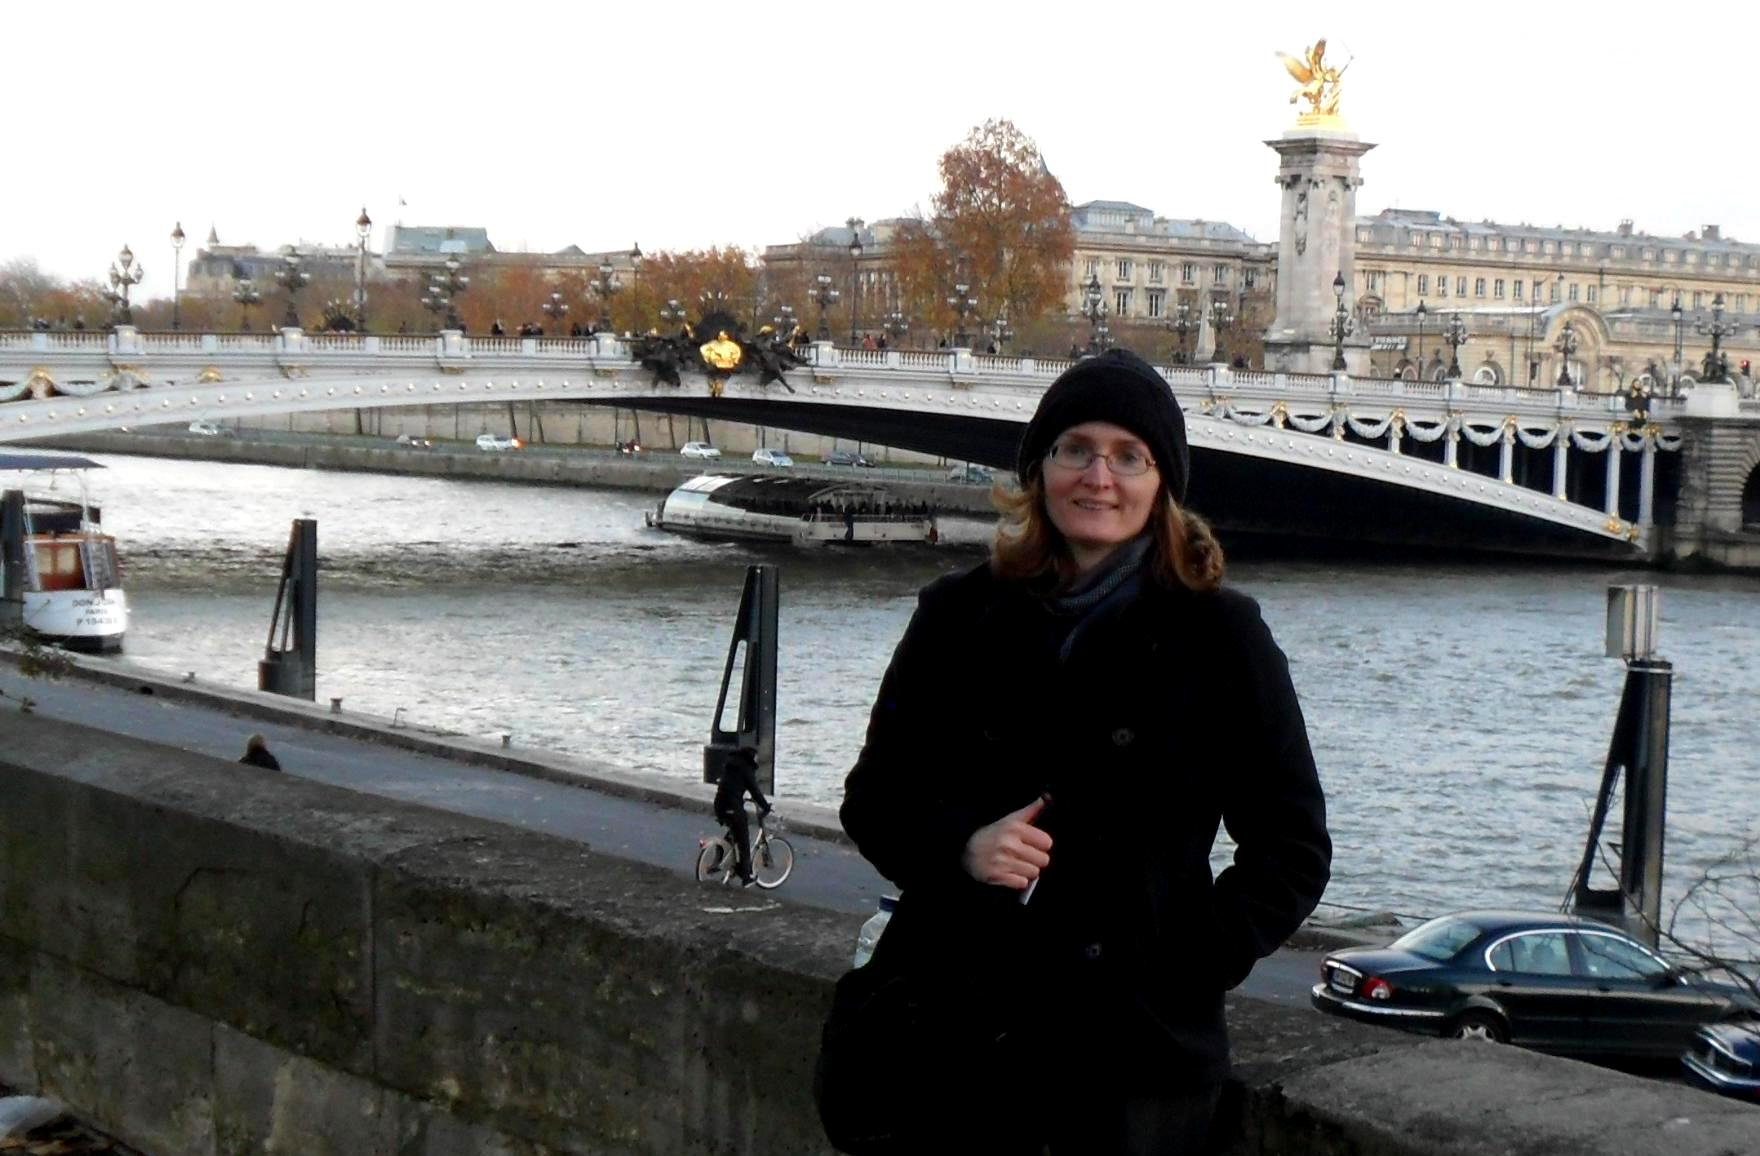 Solo Travel or Tour Travel? Which is Right for You?